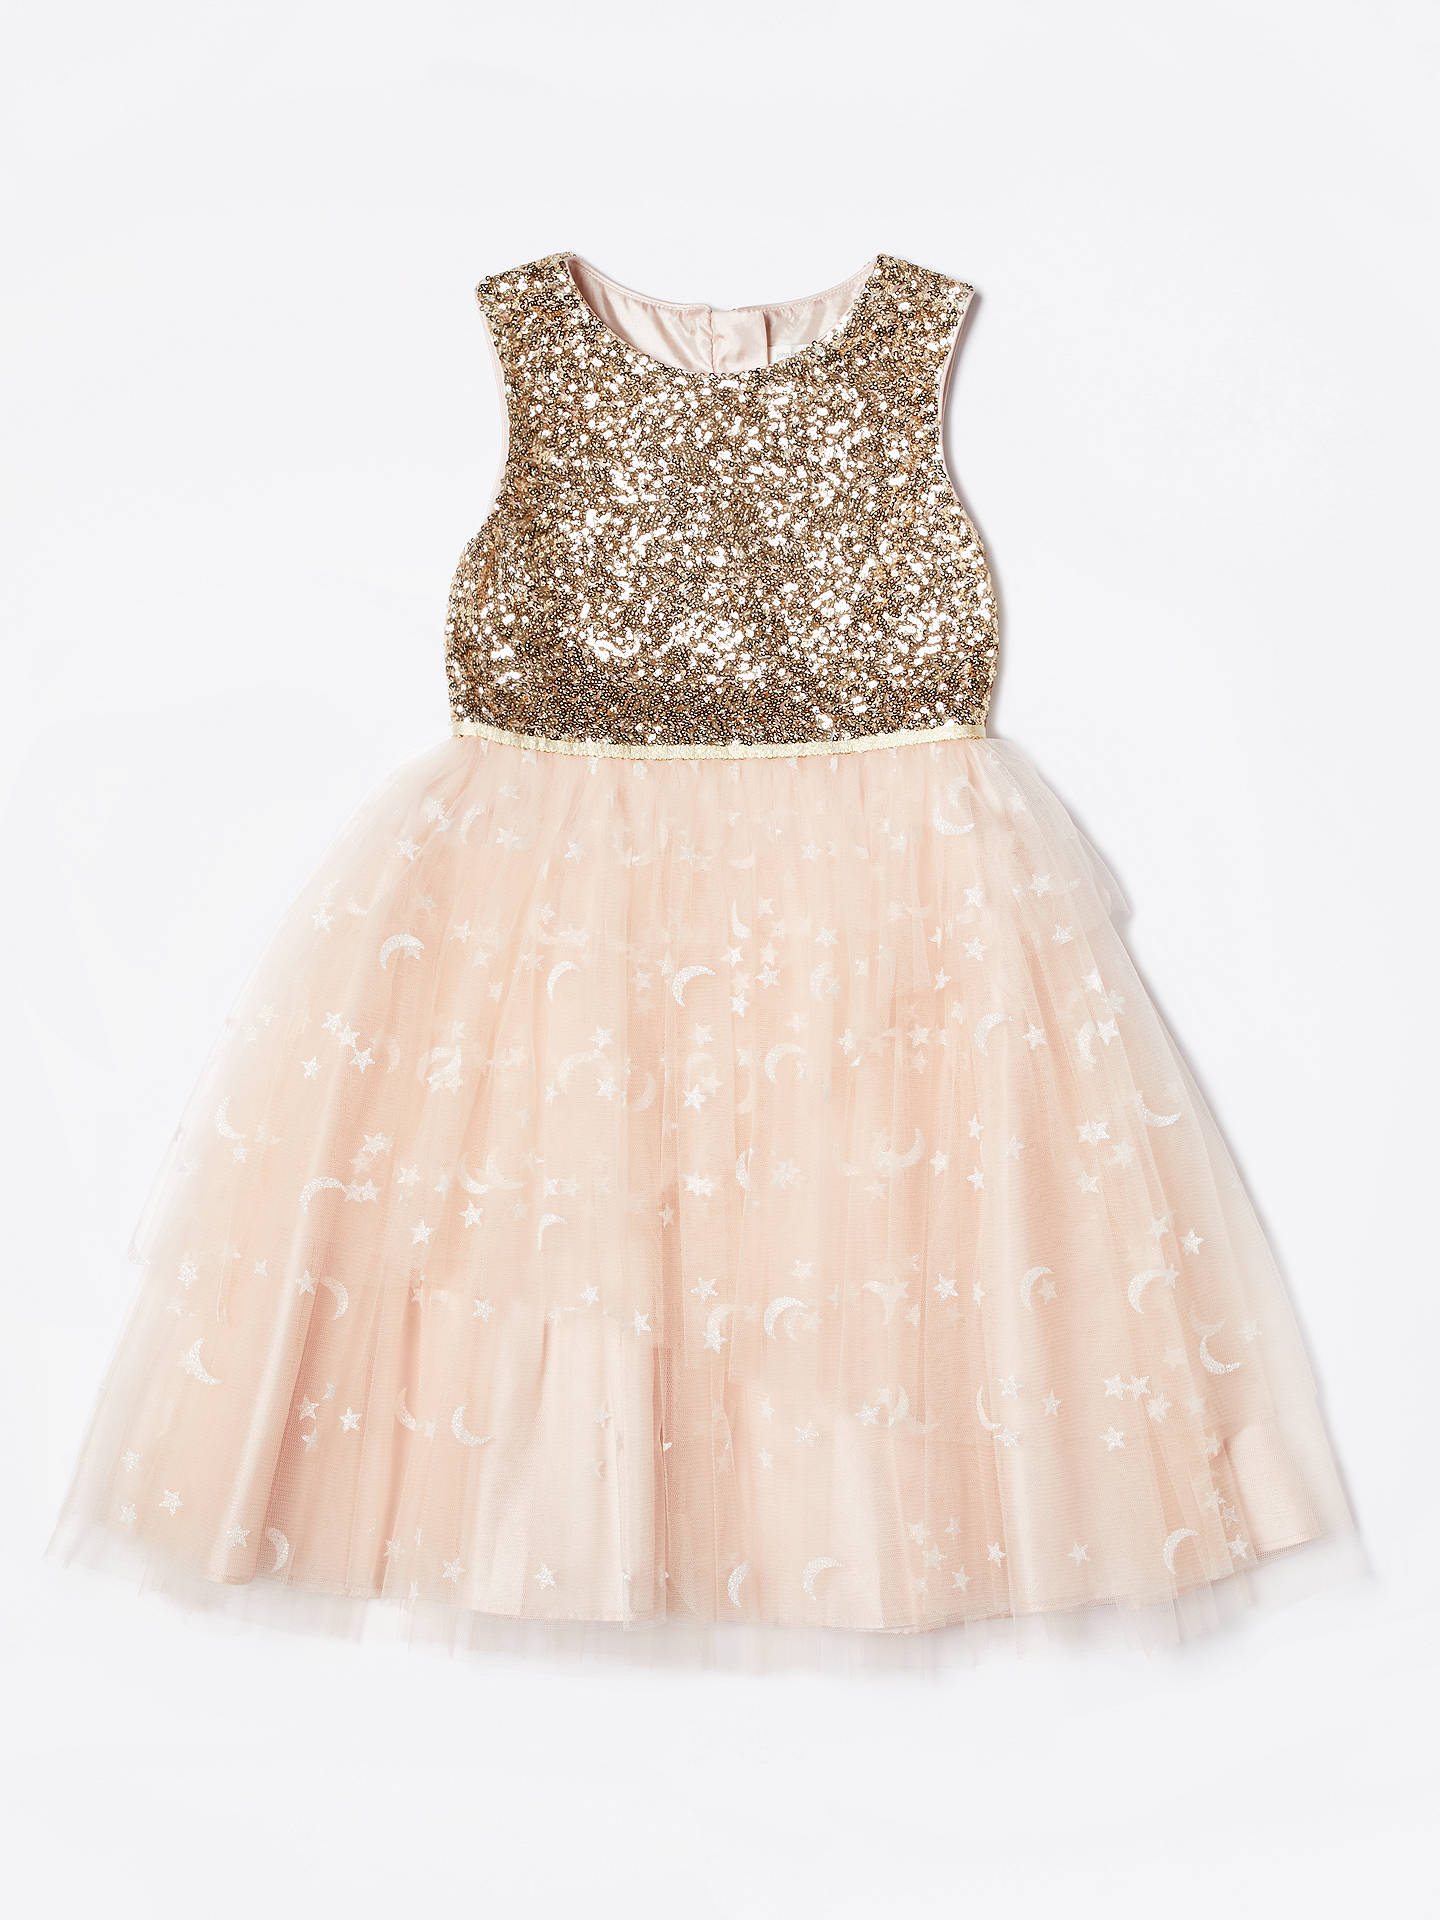 Sparkly Dress for Girls